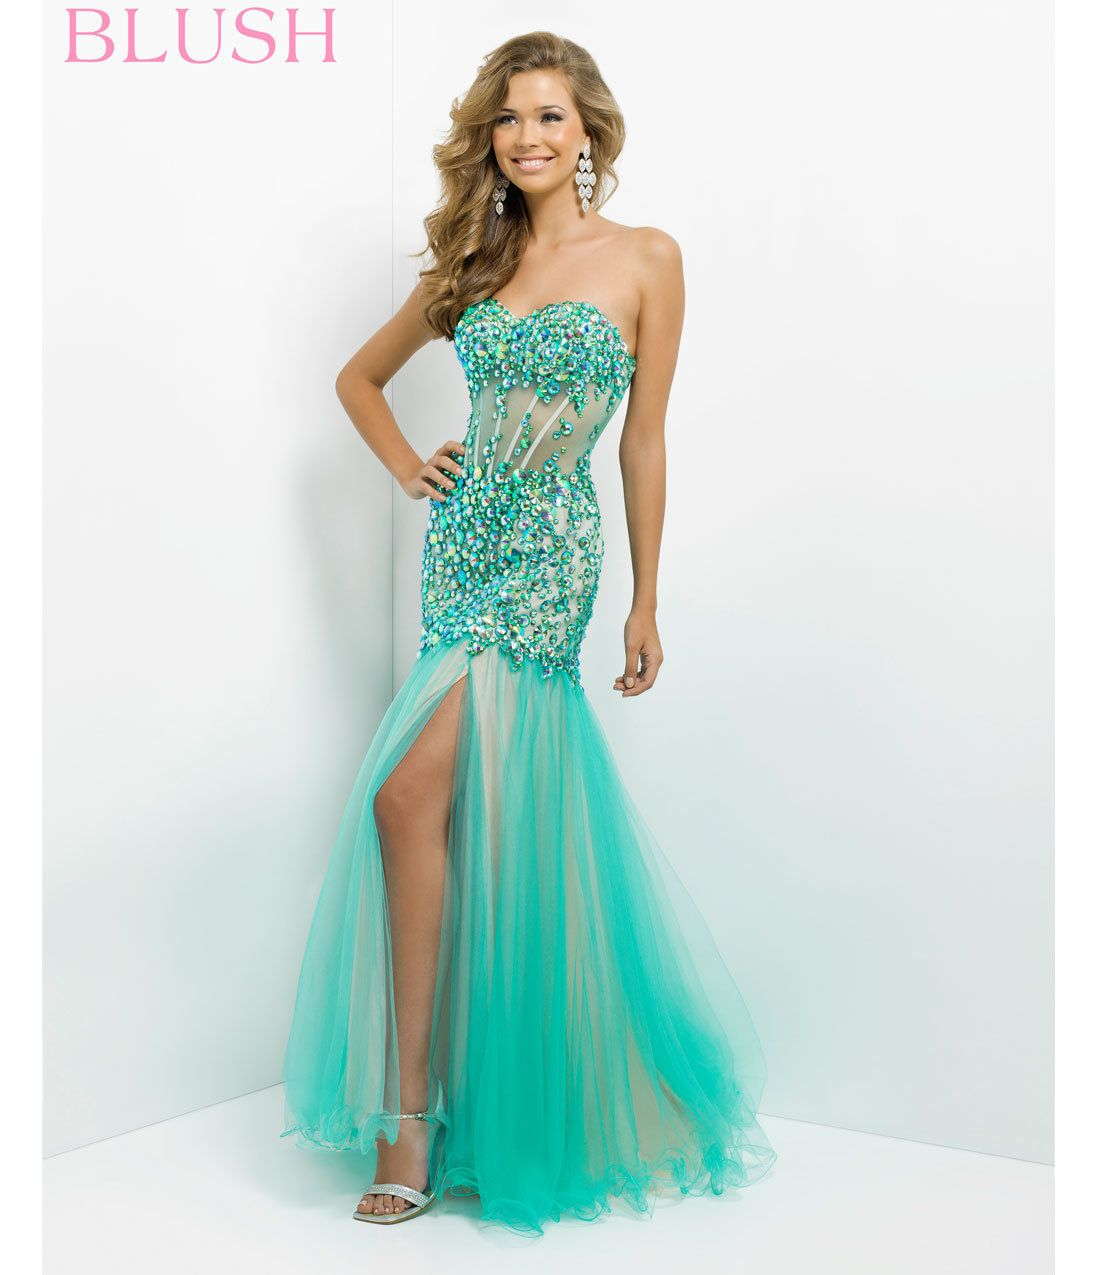 PRE-ORDER) Blush 2014 Prom Dresses - Aquamarine & Nude Beaded ...